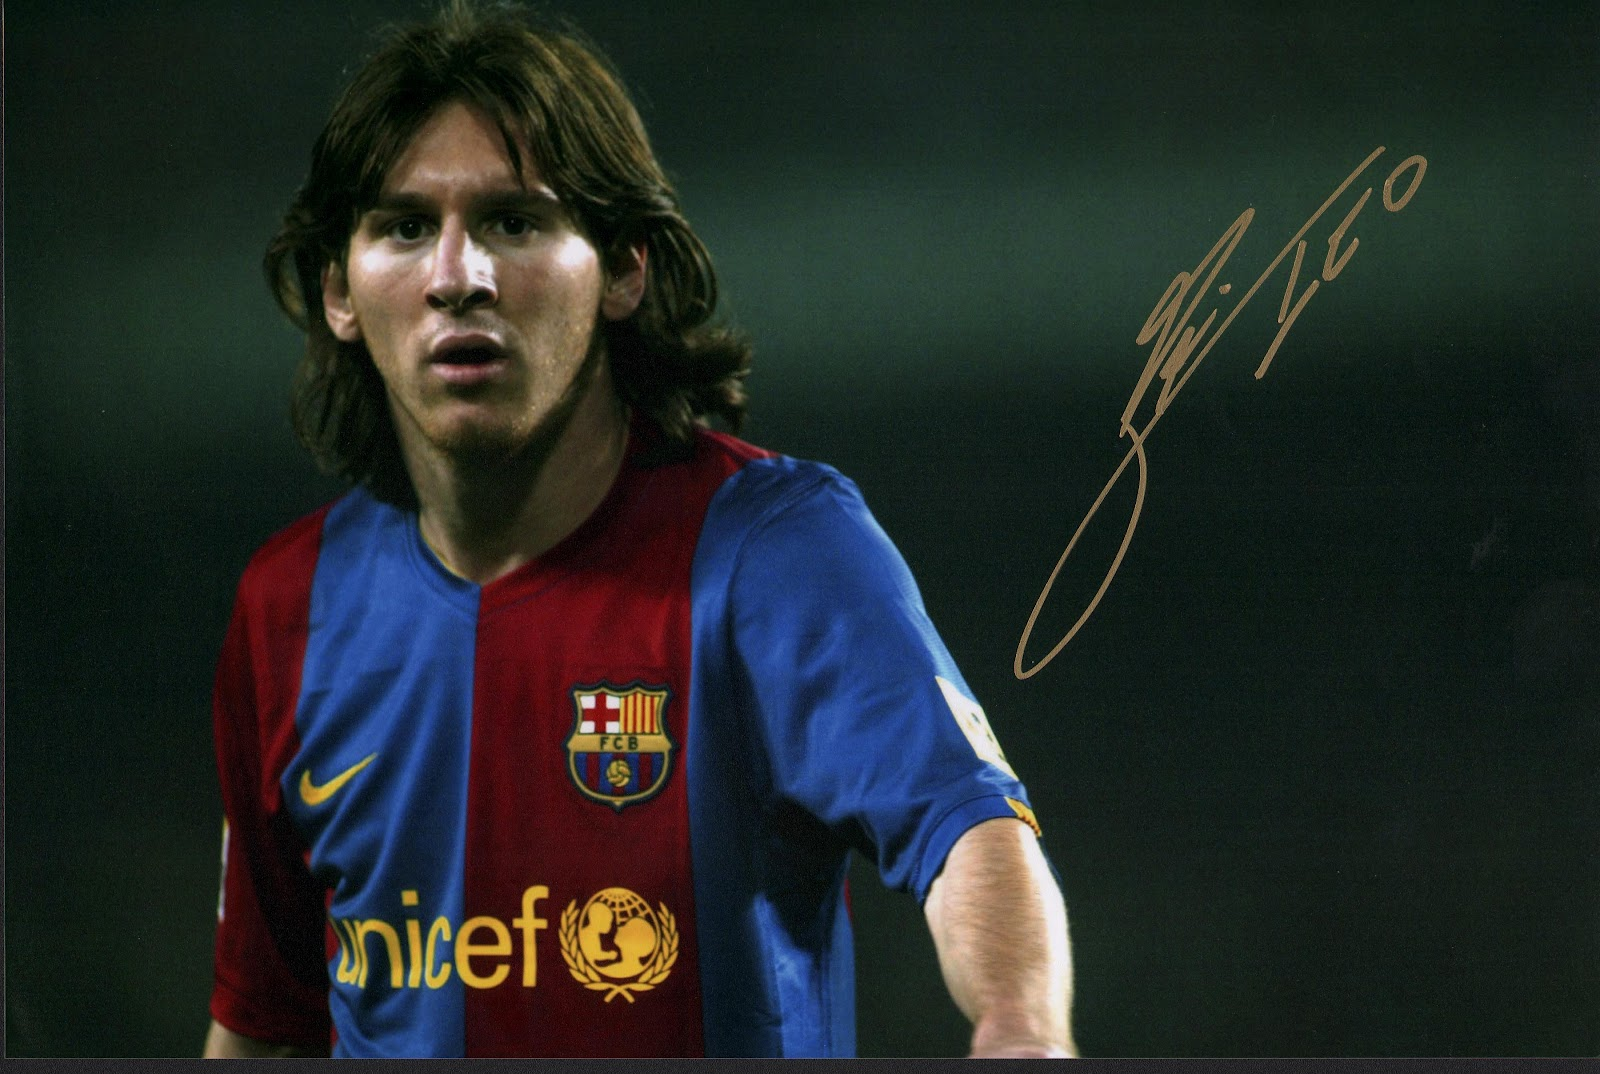 The Teach Zone Pes 2011 Lionel Messi New Hair Cut Face